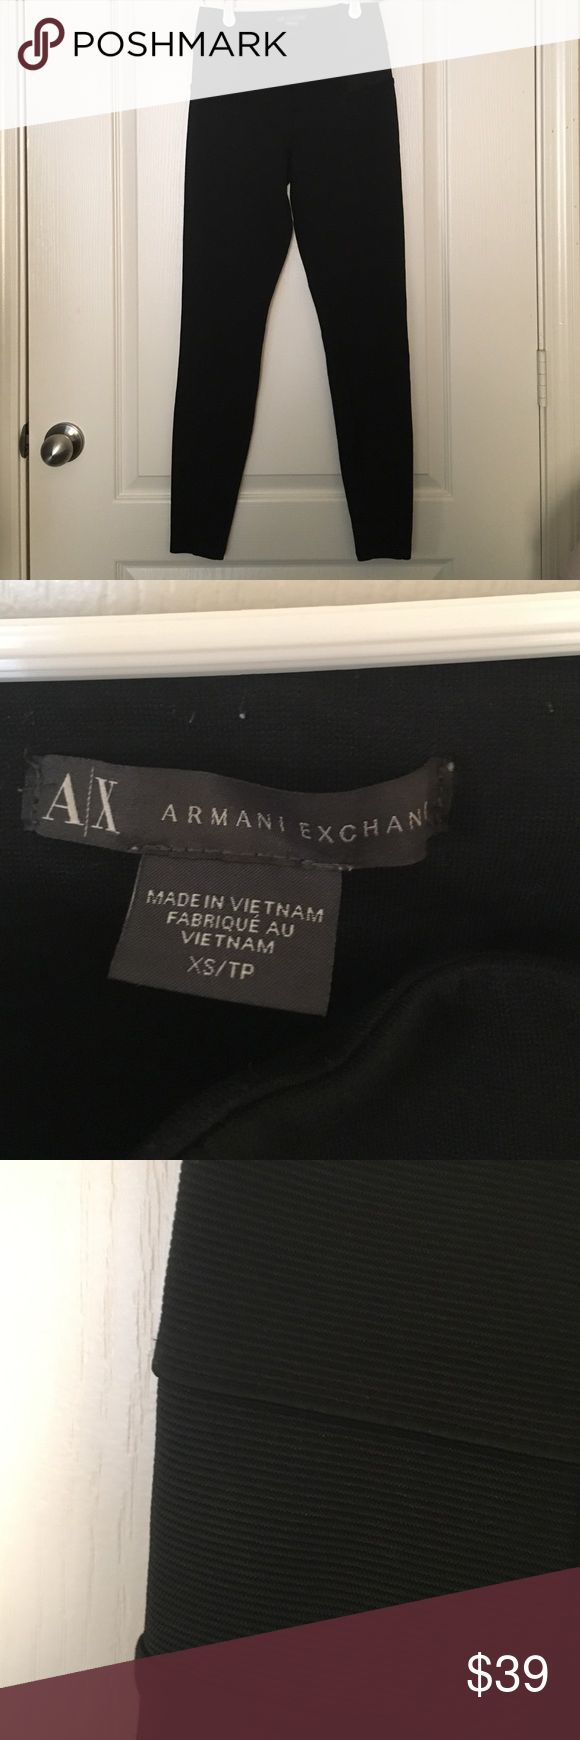 Armani Exchange bonded Ponte pants Leggings  XS Armani Exchange bonded Ponte pants Leggings  XS size XS measurements lying flat waist 12.5 (but they are stretchy as they are leggings), overall length is about 36 inches. With structured seams and an exposed elastic waistband, this sporty ponte pant feels like a legging with a bit more substance. A/X Armani Exchange Pants Leggings